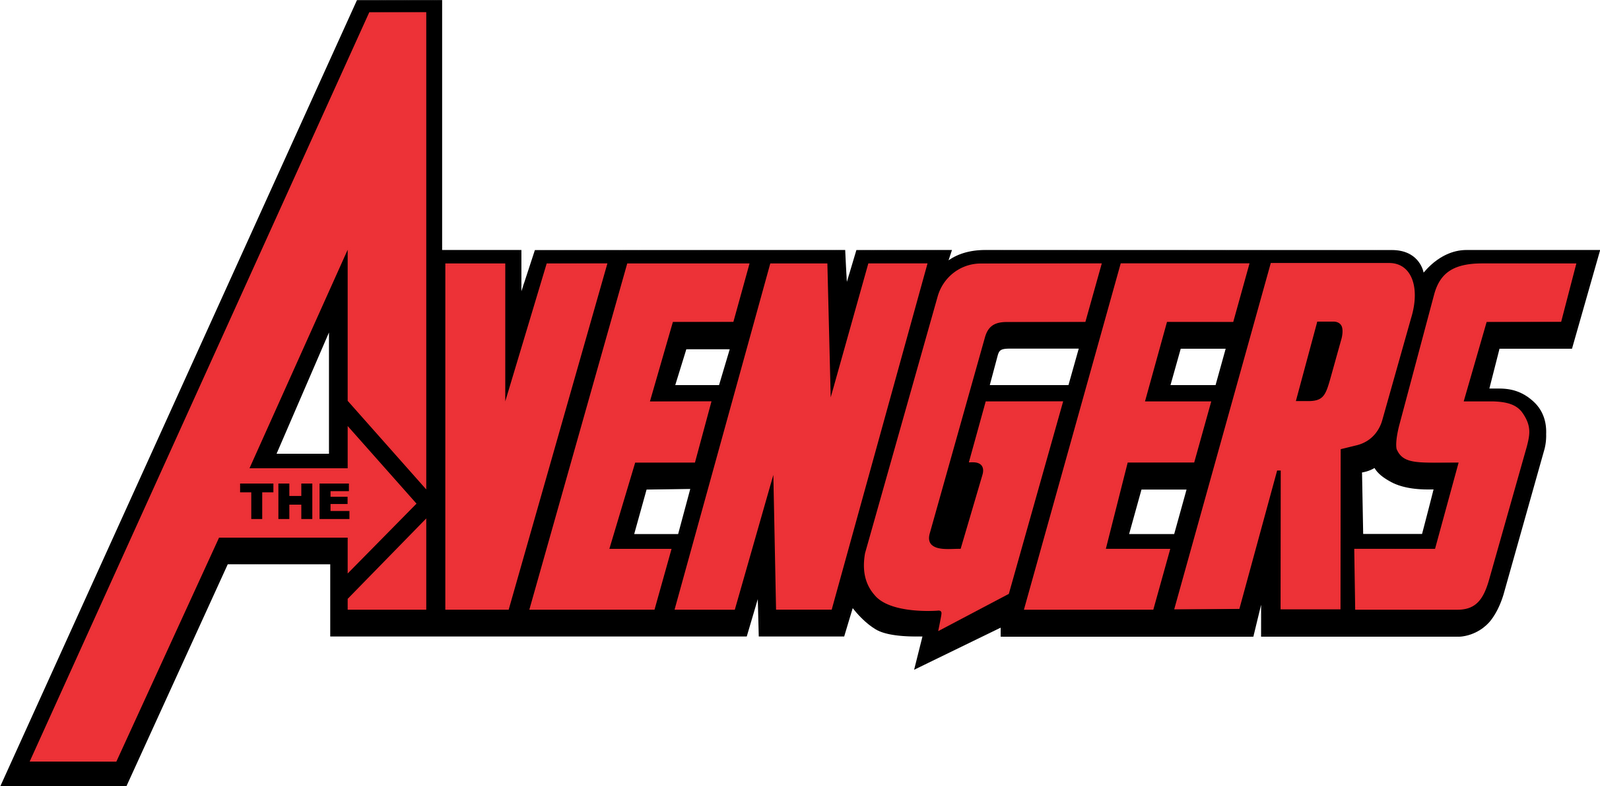 logo clipart avengers logo avengers transparent free for download on webstockreview 2020 logo clipart avengers logo avengers